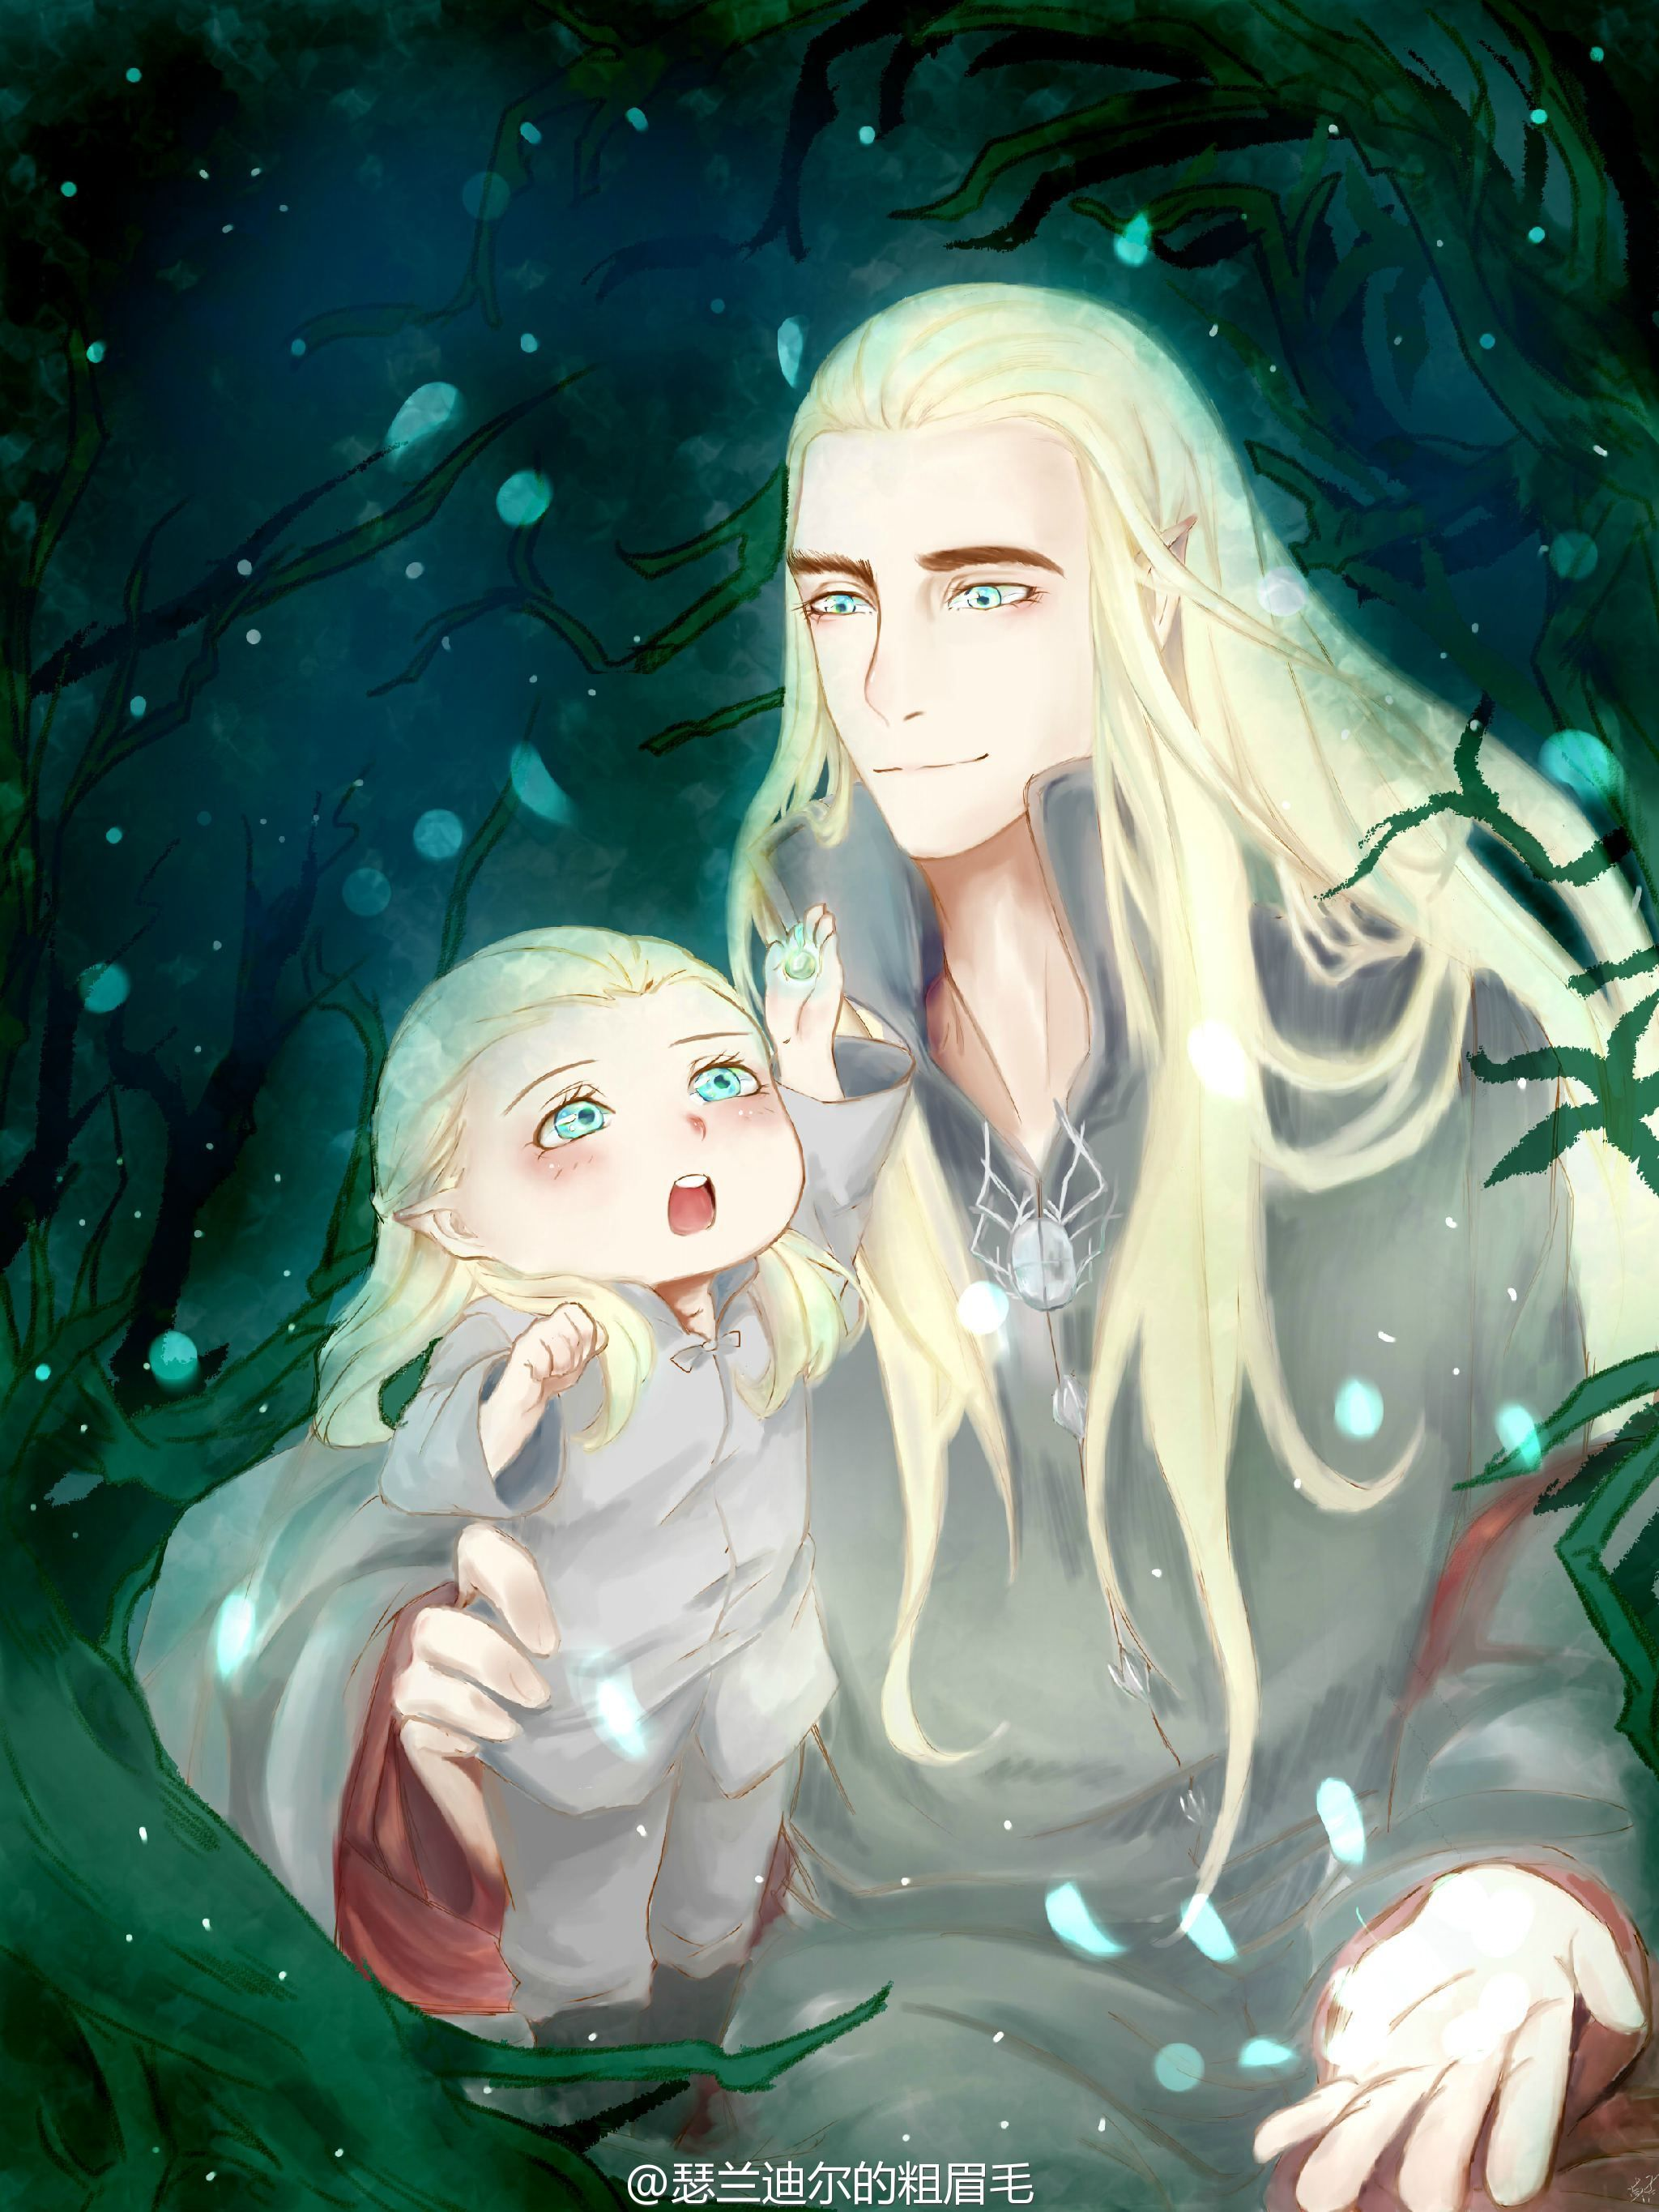 thranduil and little legolas house of oropher